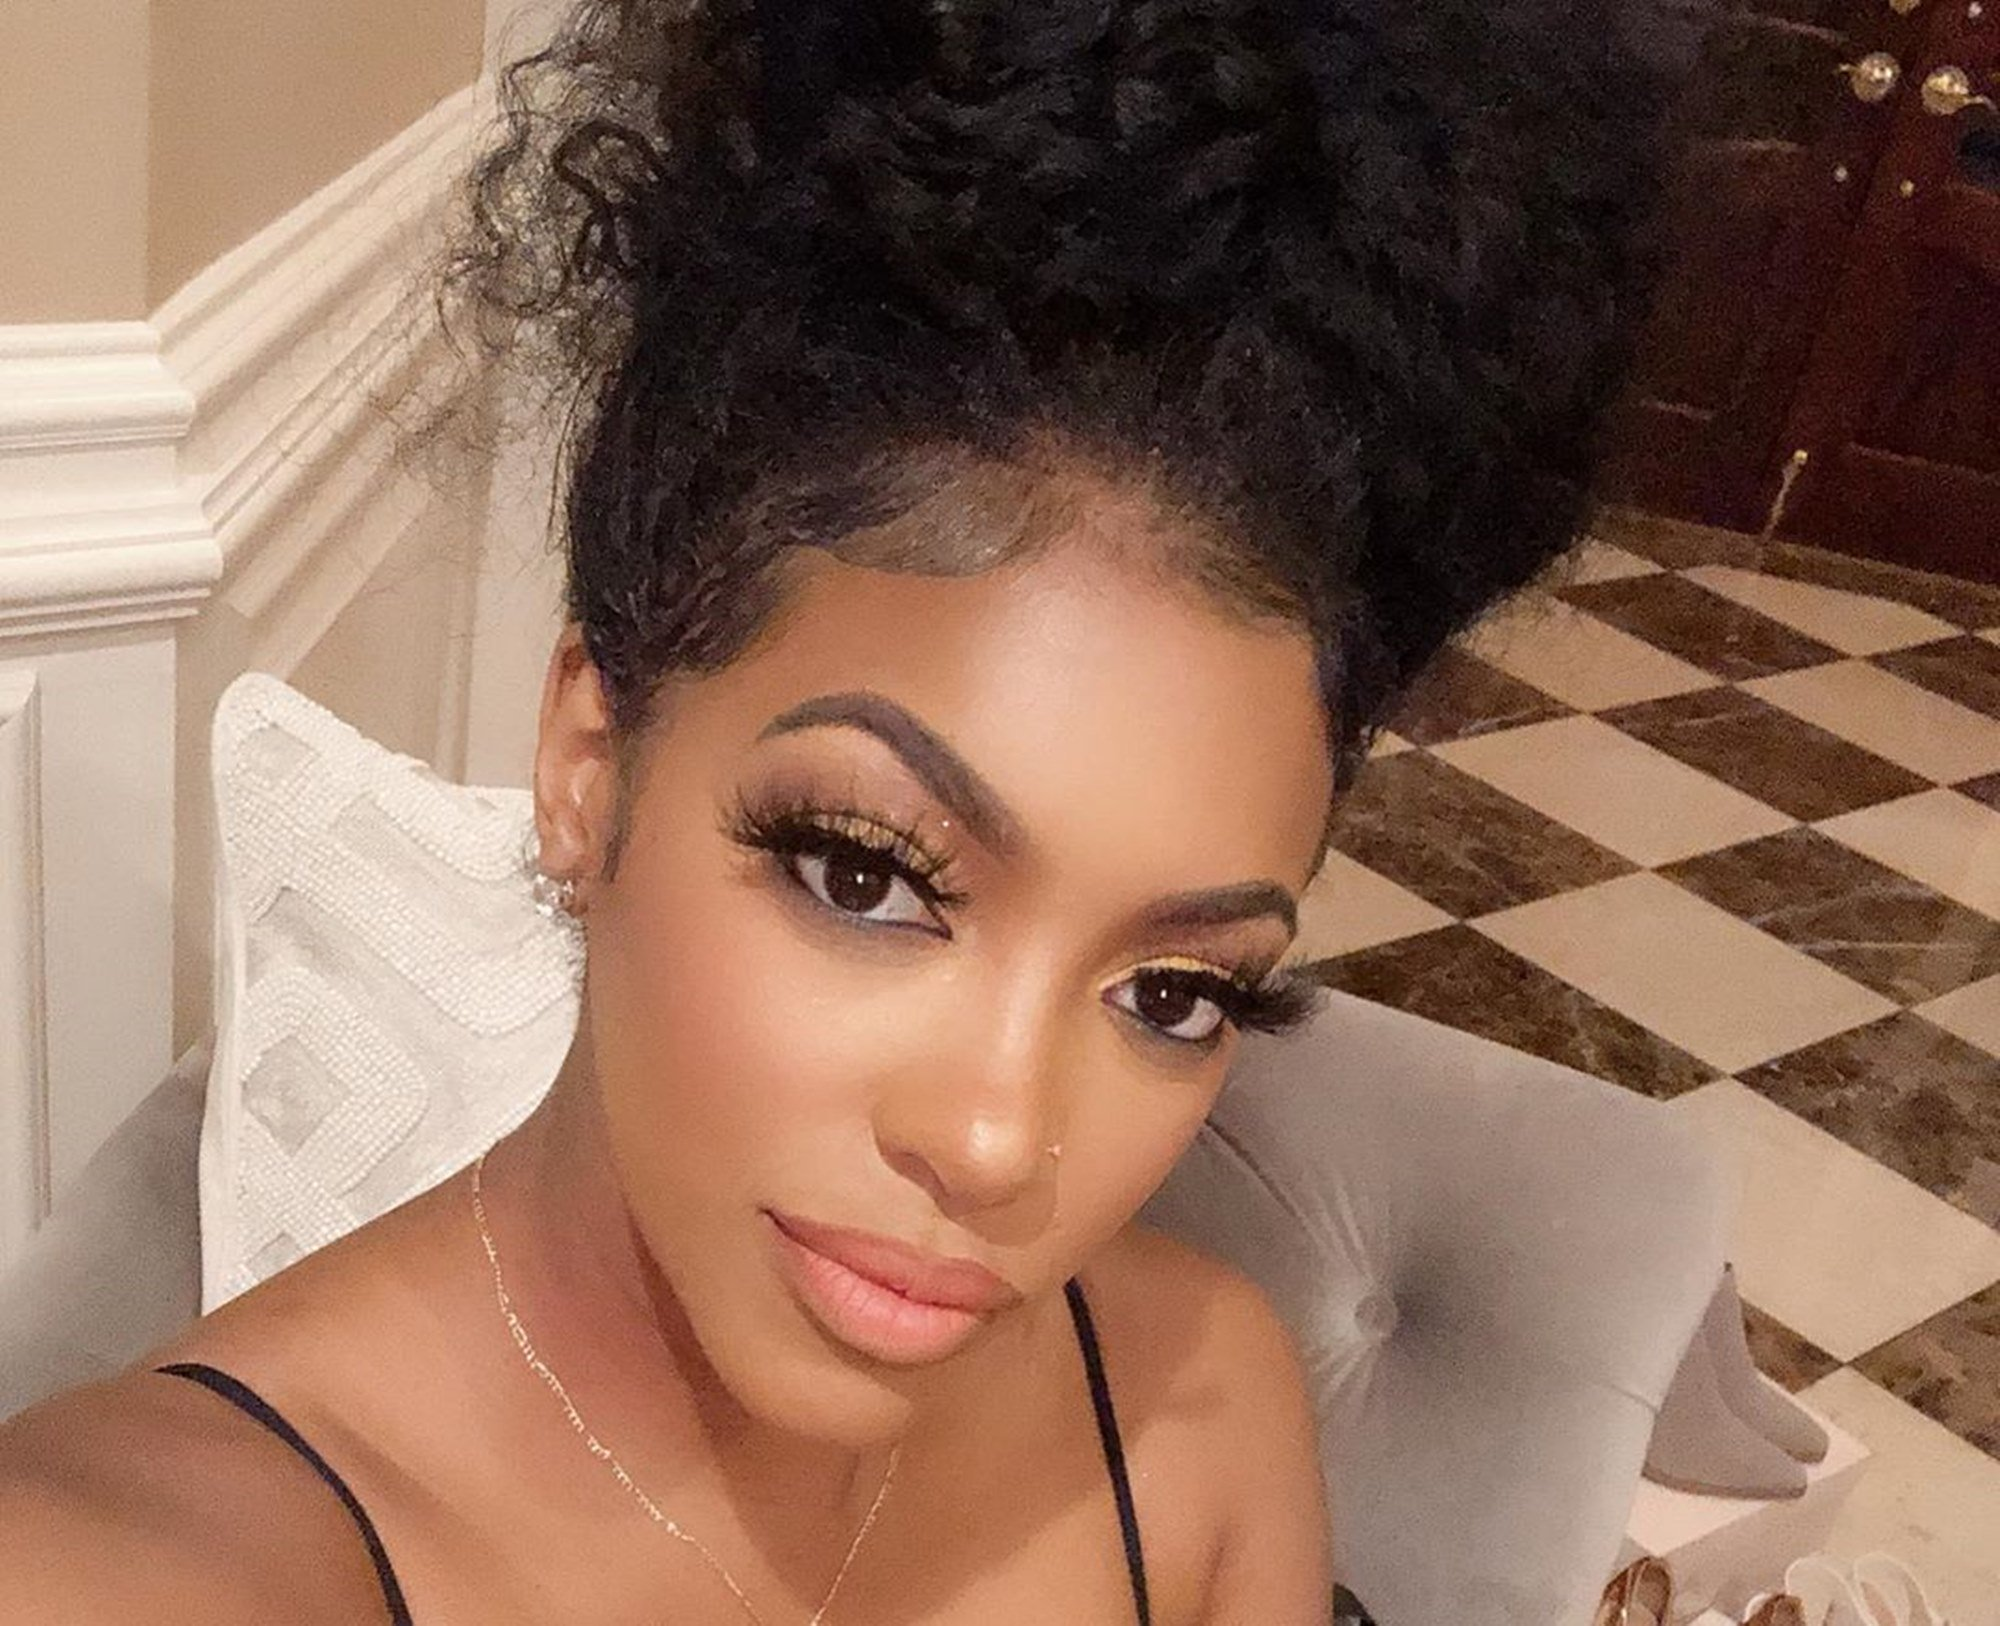 Porsha Williams Supports Black-Owned Businesses - See Her Looking Gorgeous In This Video